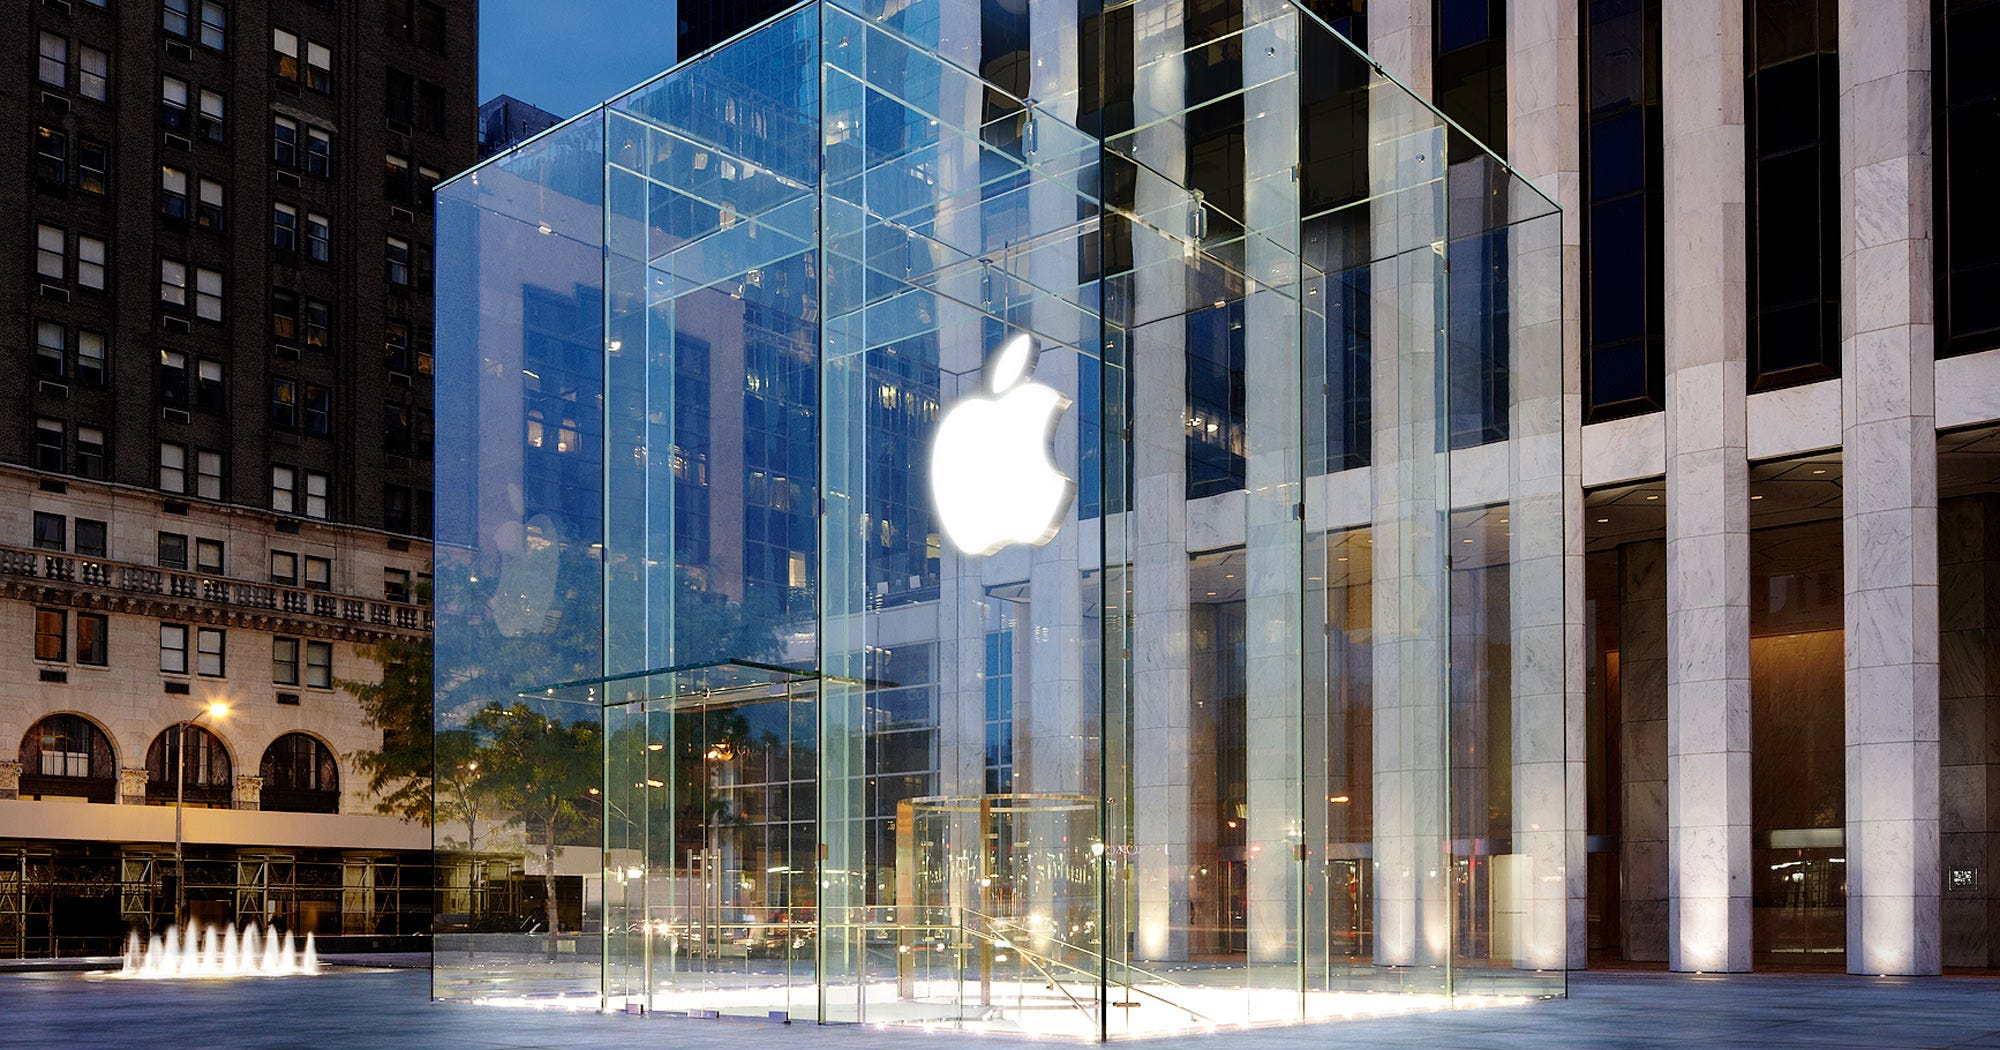 Former Apple Employees On What It's Really Like To Work There